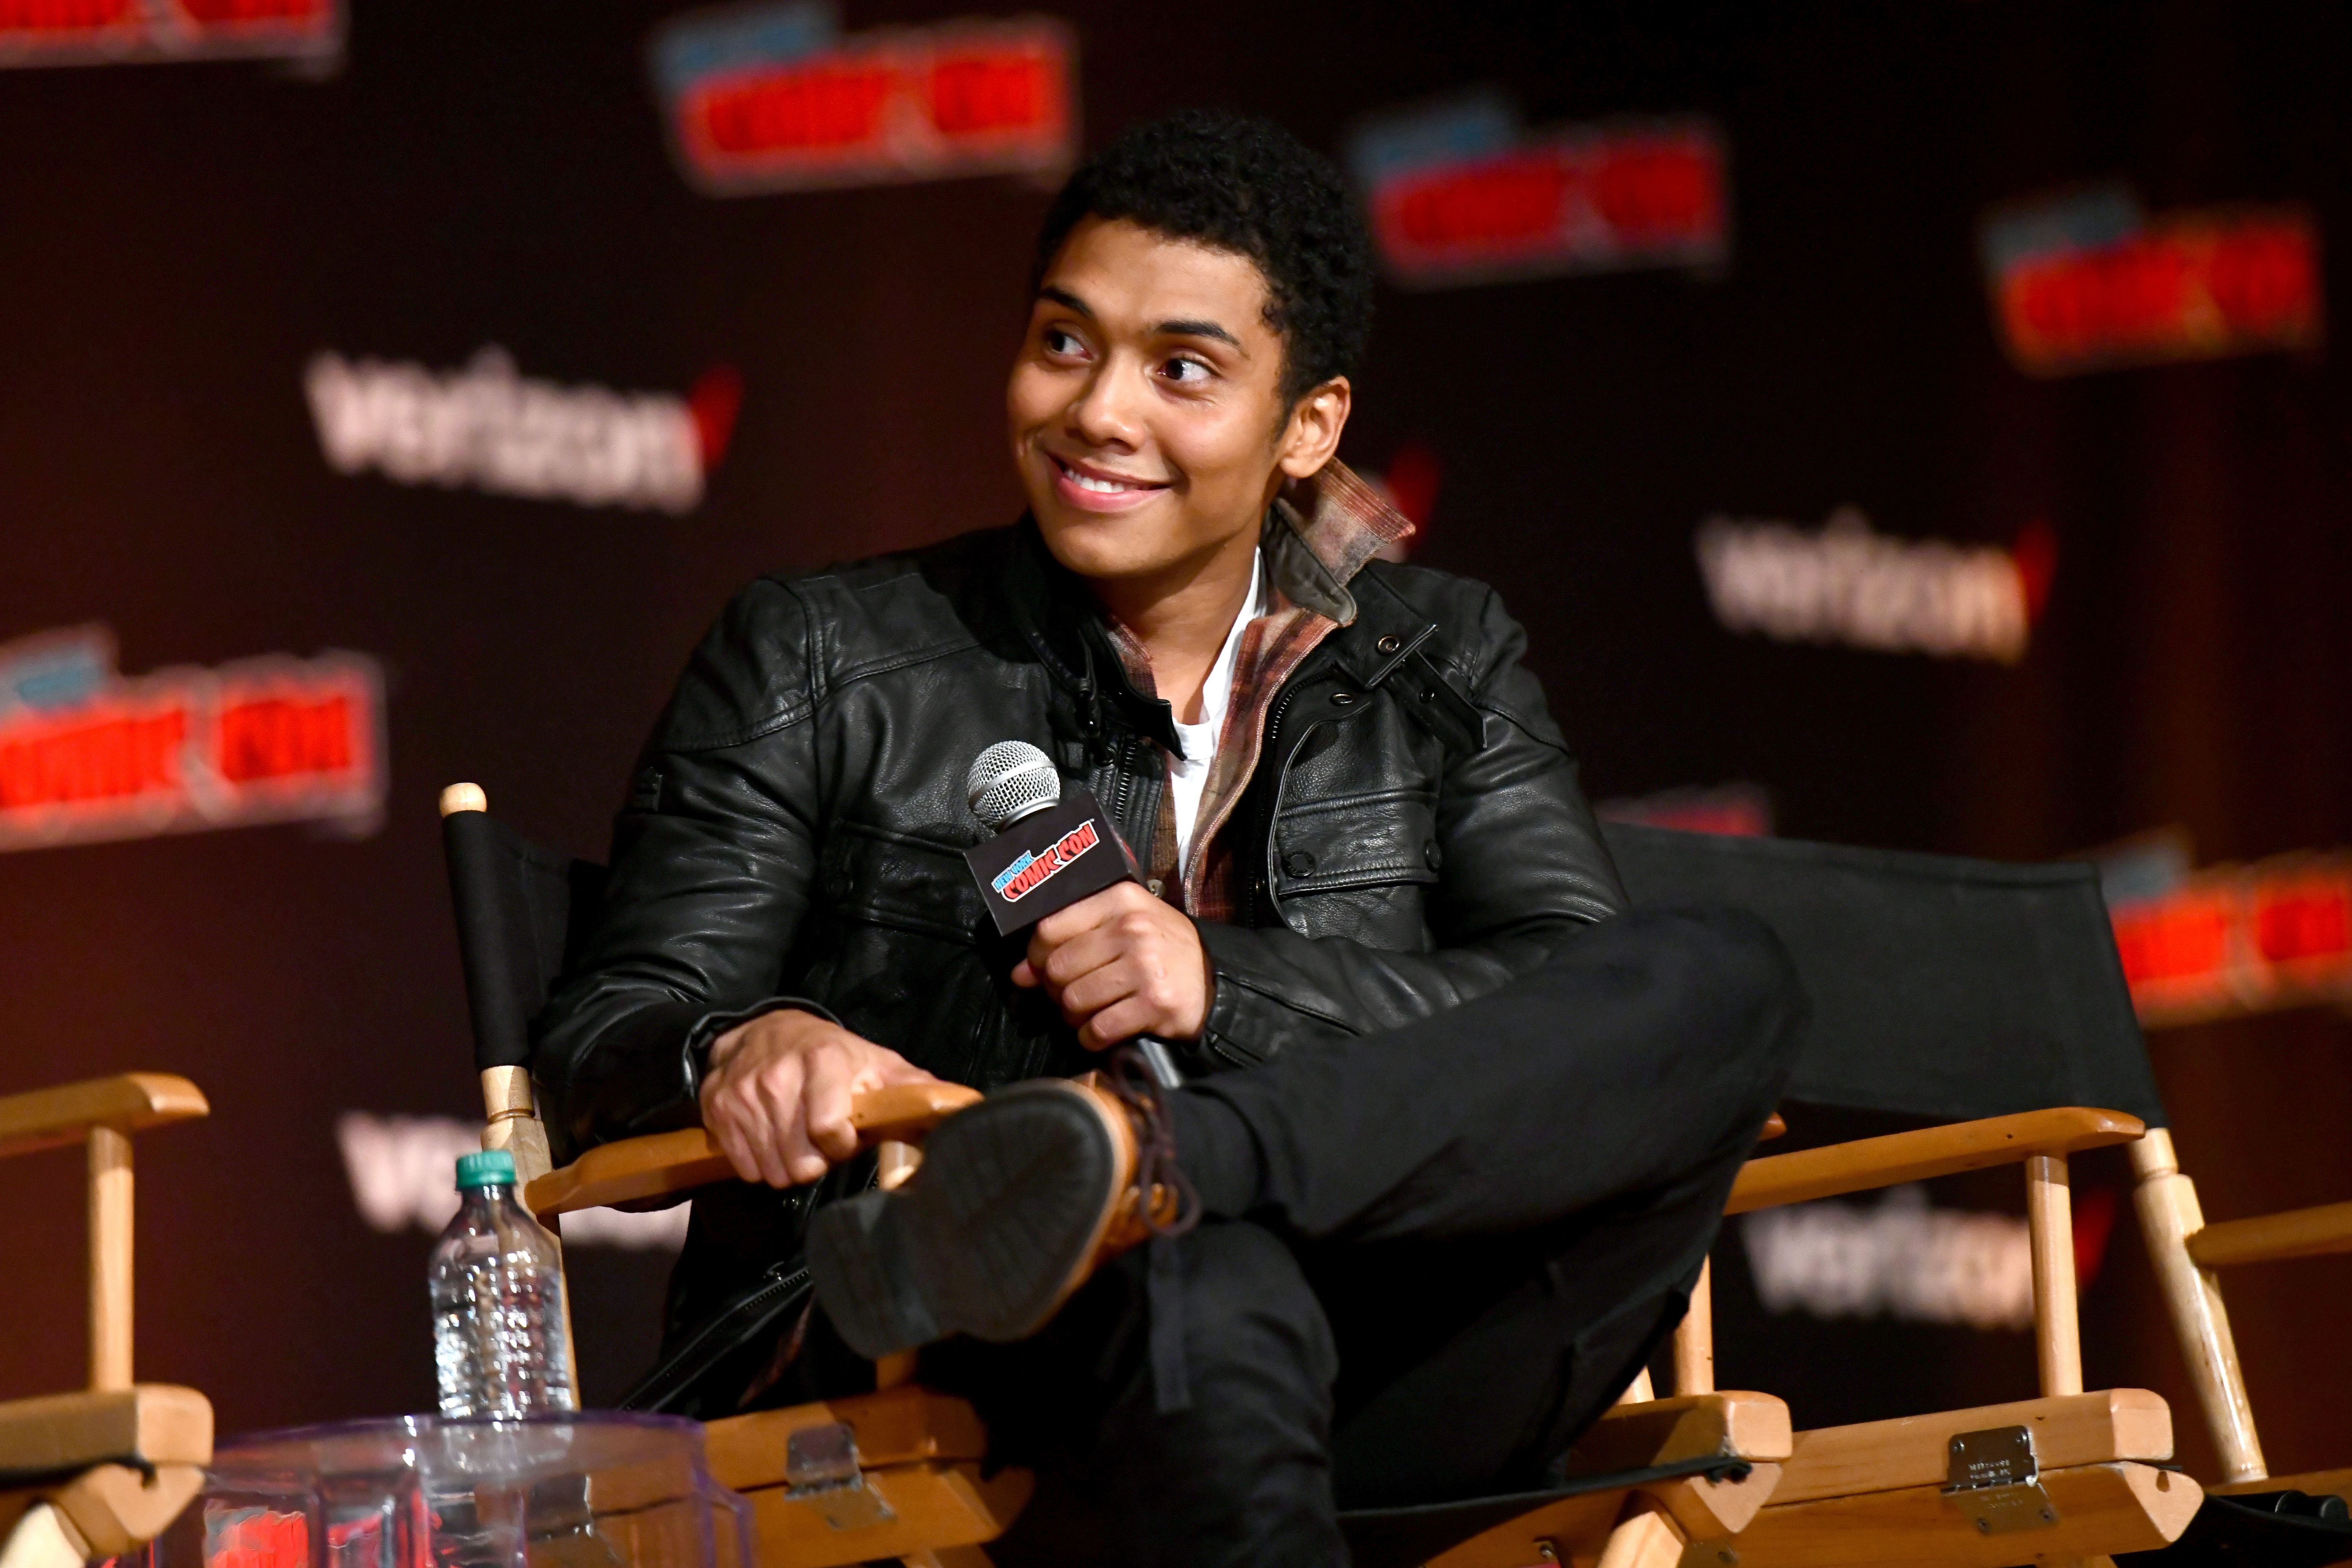 Chance Perdomo Was Also Up For the Role of Jughead But there are no hard feelings—the British cutie later landed a lead role in Netflix's Chilling Adventures of Sabrina as Sabrina's cousin and pansexual prince Ambrose Spellman. Keeping it all in the Archie Comics universe, people.